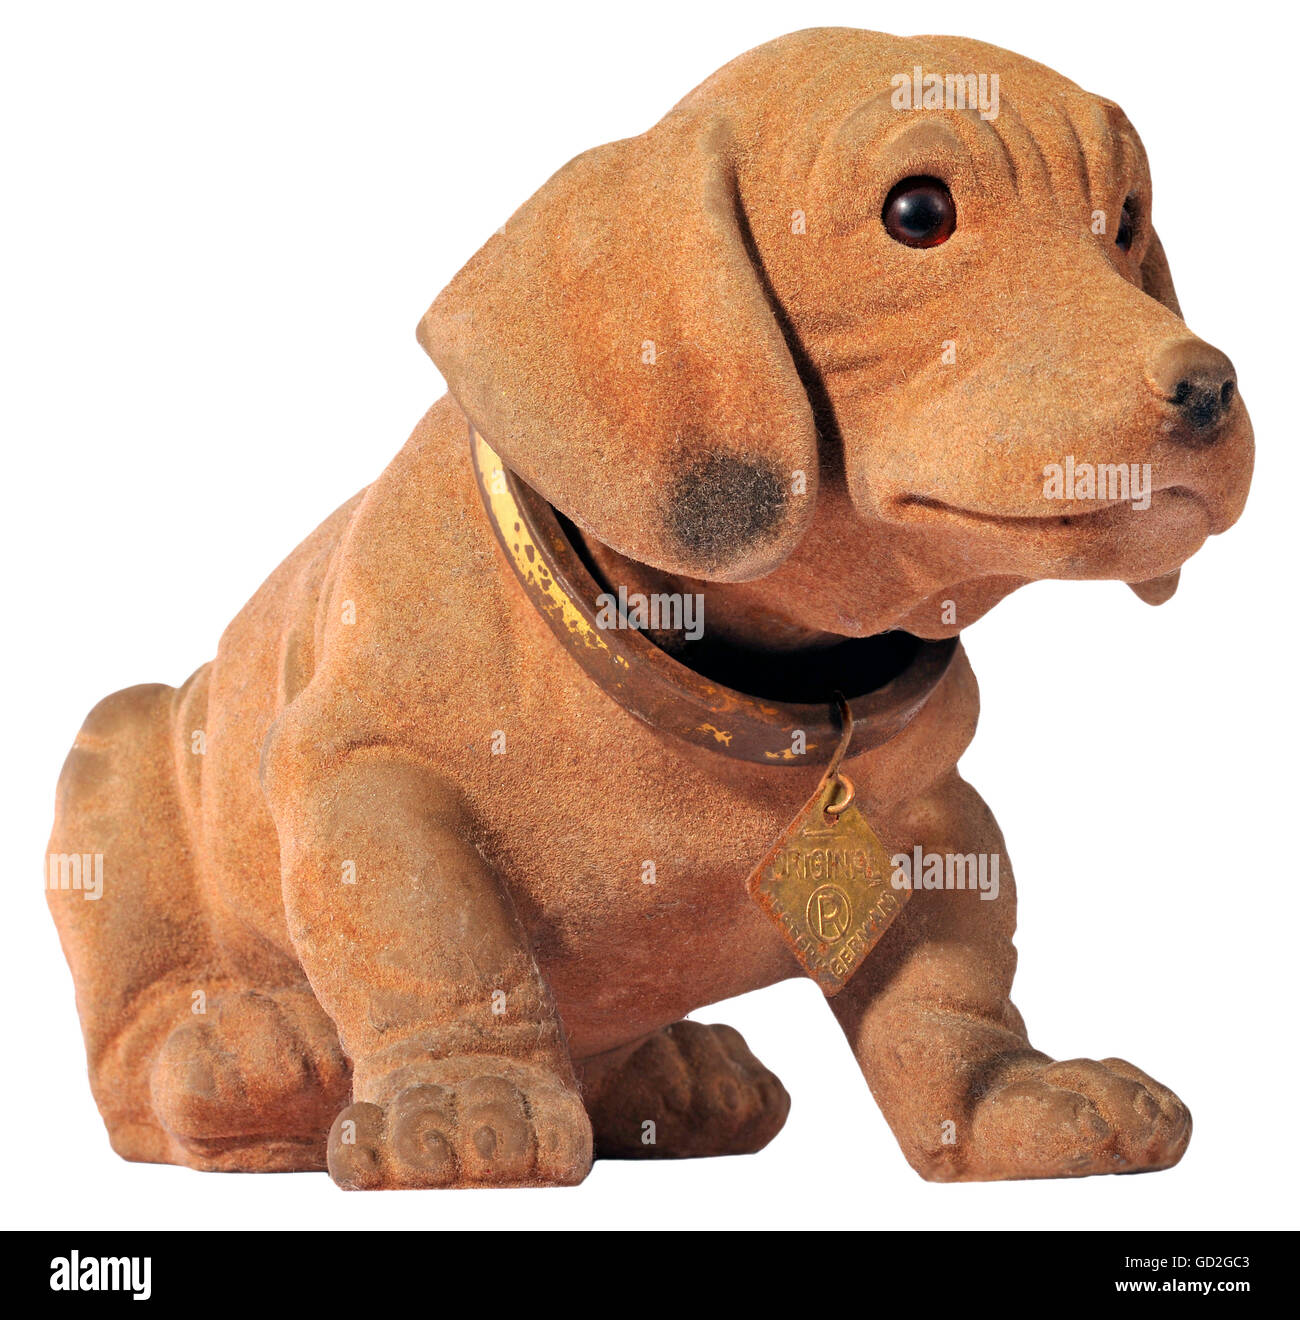 kitsch / souvenirs, nodding dog, one of the first nodding dogs, invented 1965, with dog tag Original Western Germany, - Stock Image